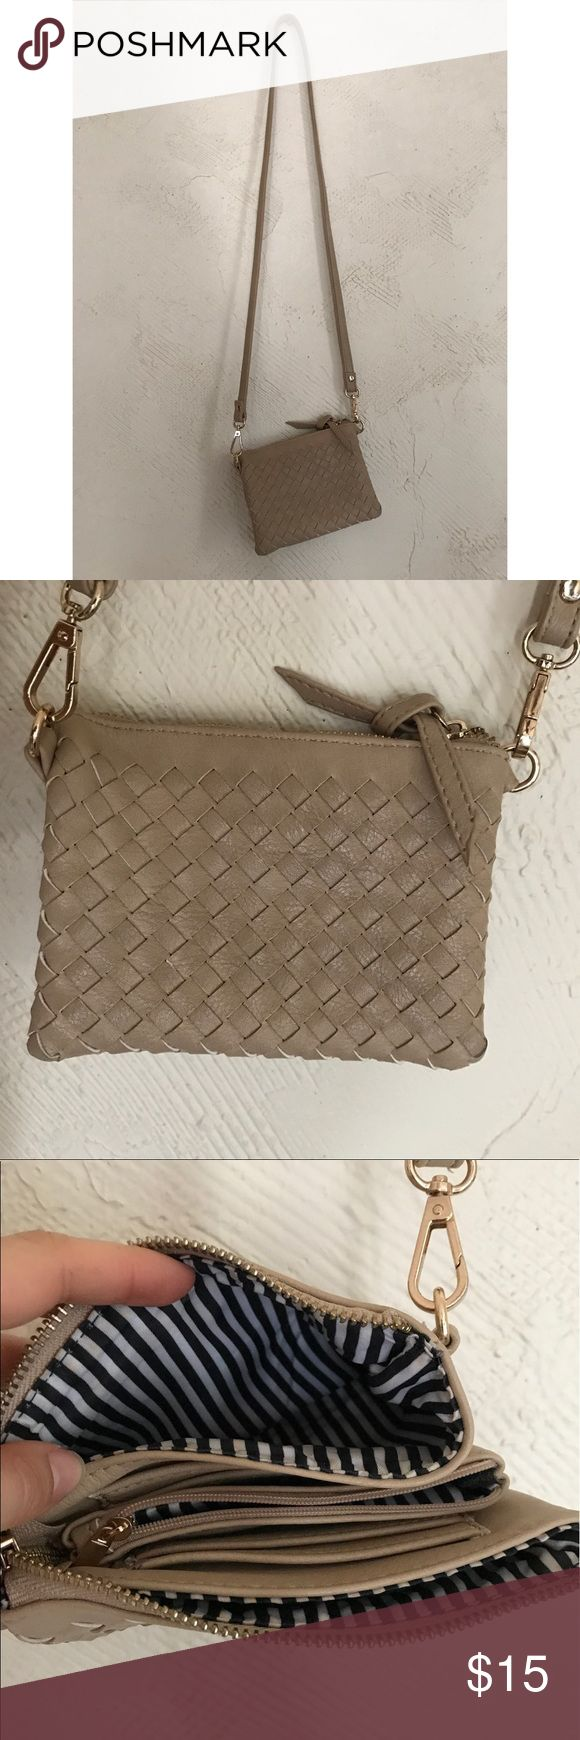 Nude clutch 👛 Nude clutch with insane storage. Perfect for a night out as a cross body or alone with the removable strap. Goes with literally everything! Bags Clutches & Wristlets